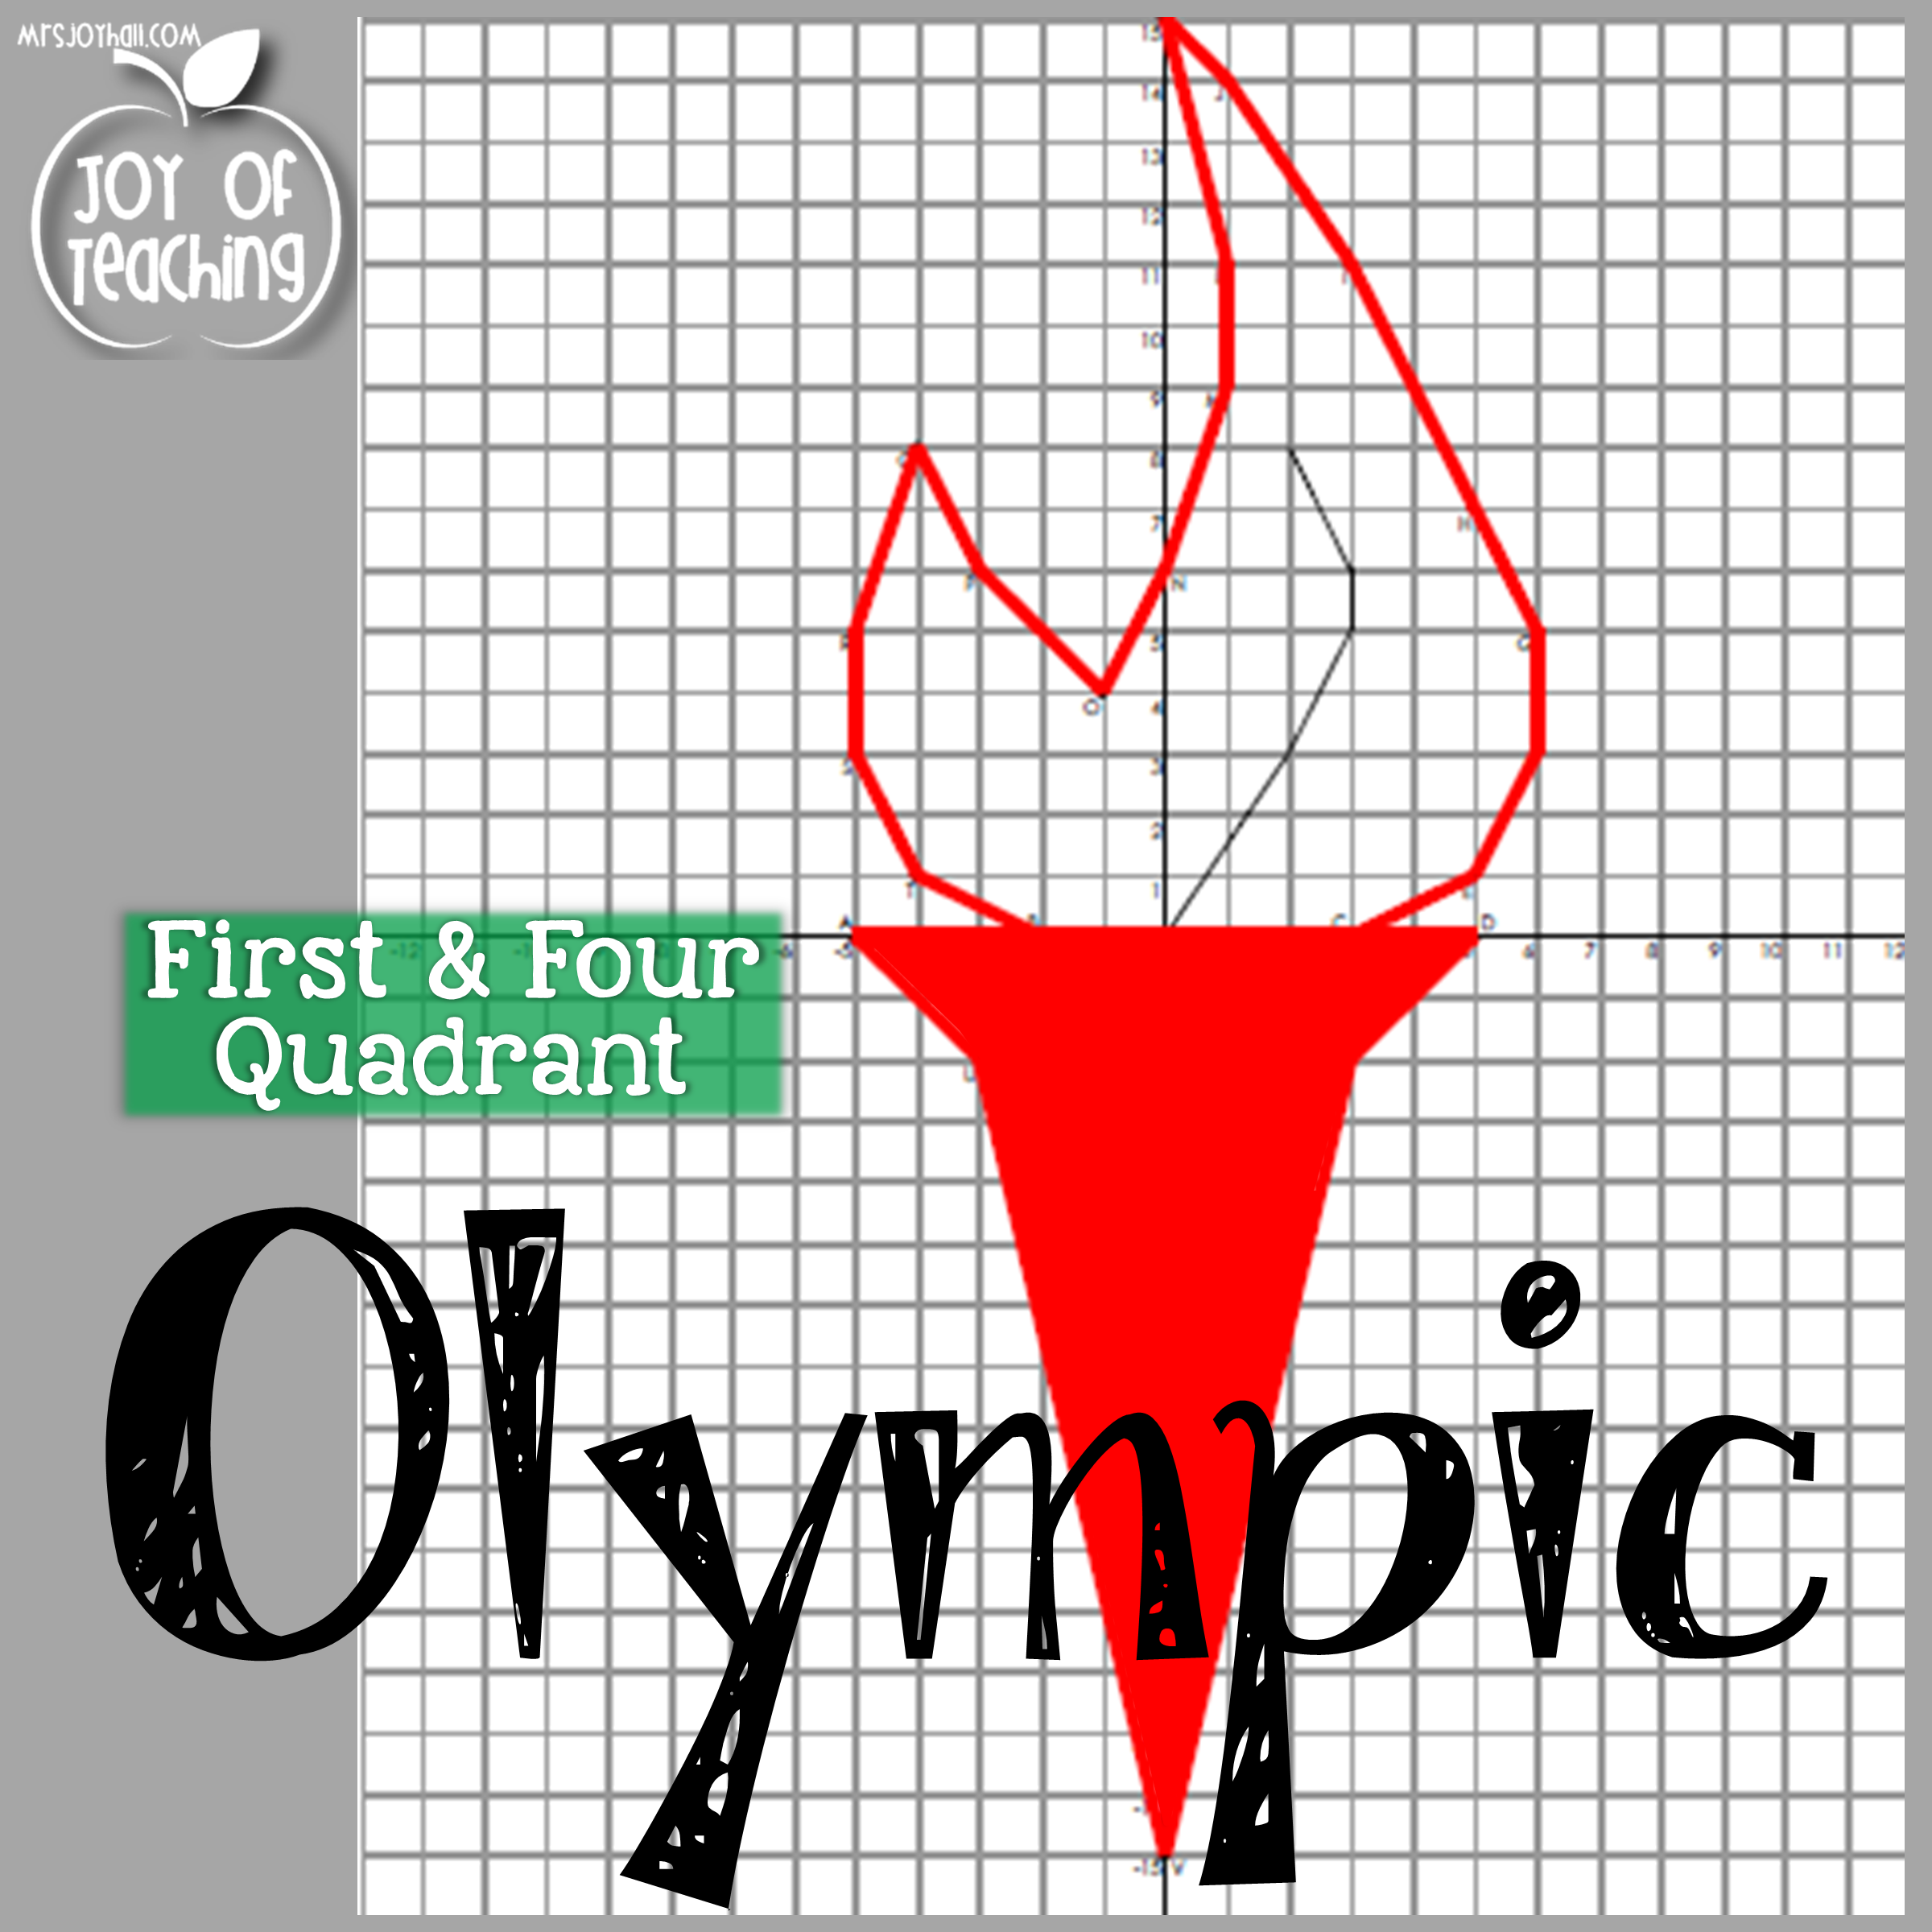 First Amp Four Quadrant Olympic Themed Coordinate Graphing Joy Of Teaching Mrsjoyhall